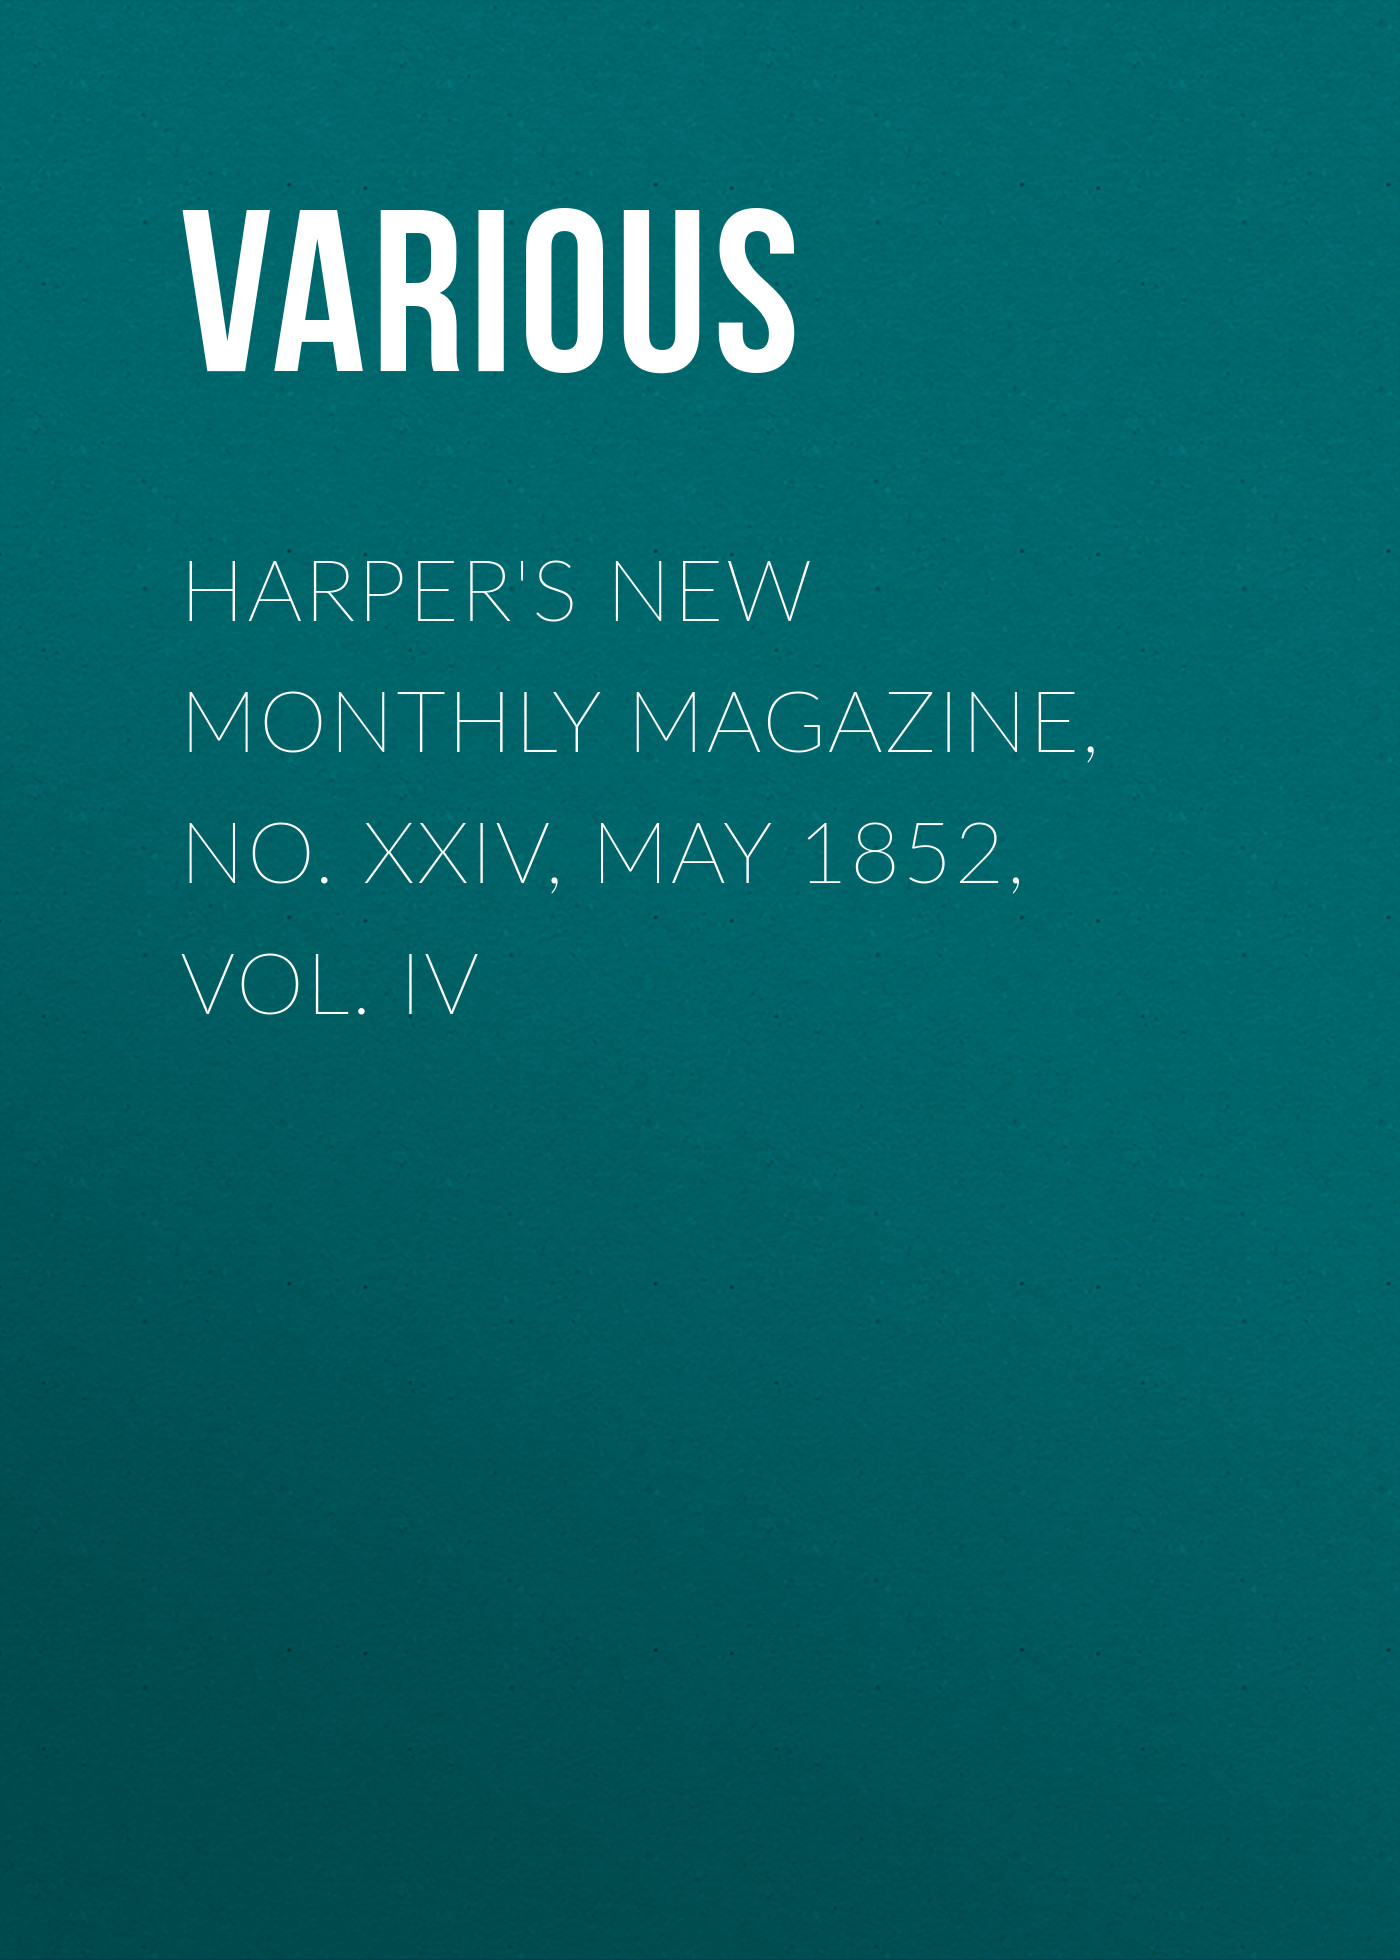 Various Harper's New Monthly Magazine, No. XXIV, May 1852, Vol. IV various harper s new monthly magazine vol iv no xx january 1852